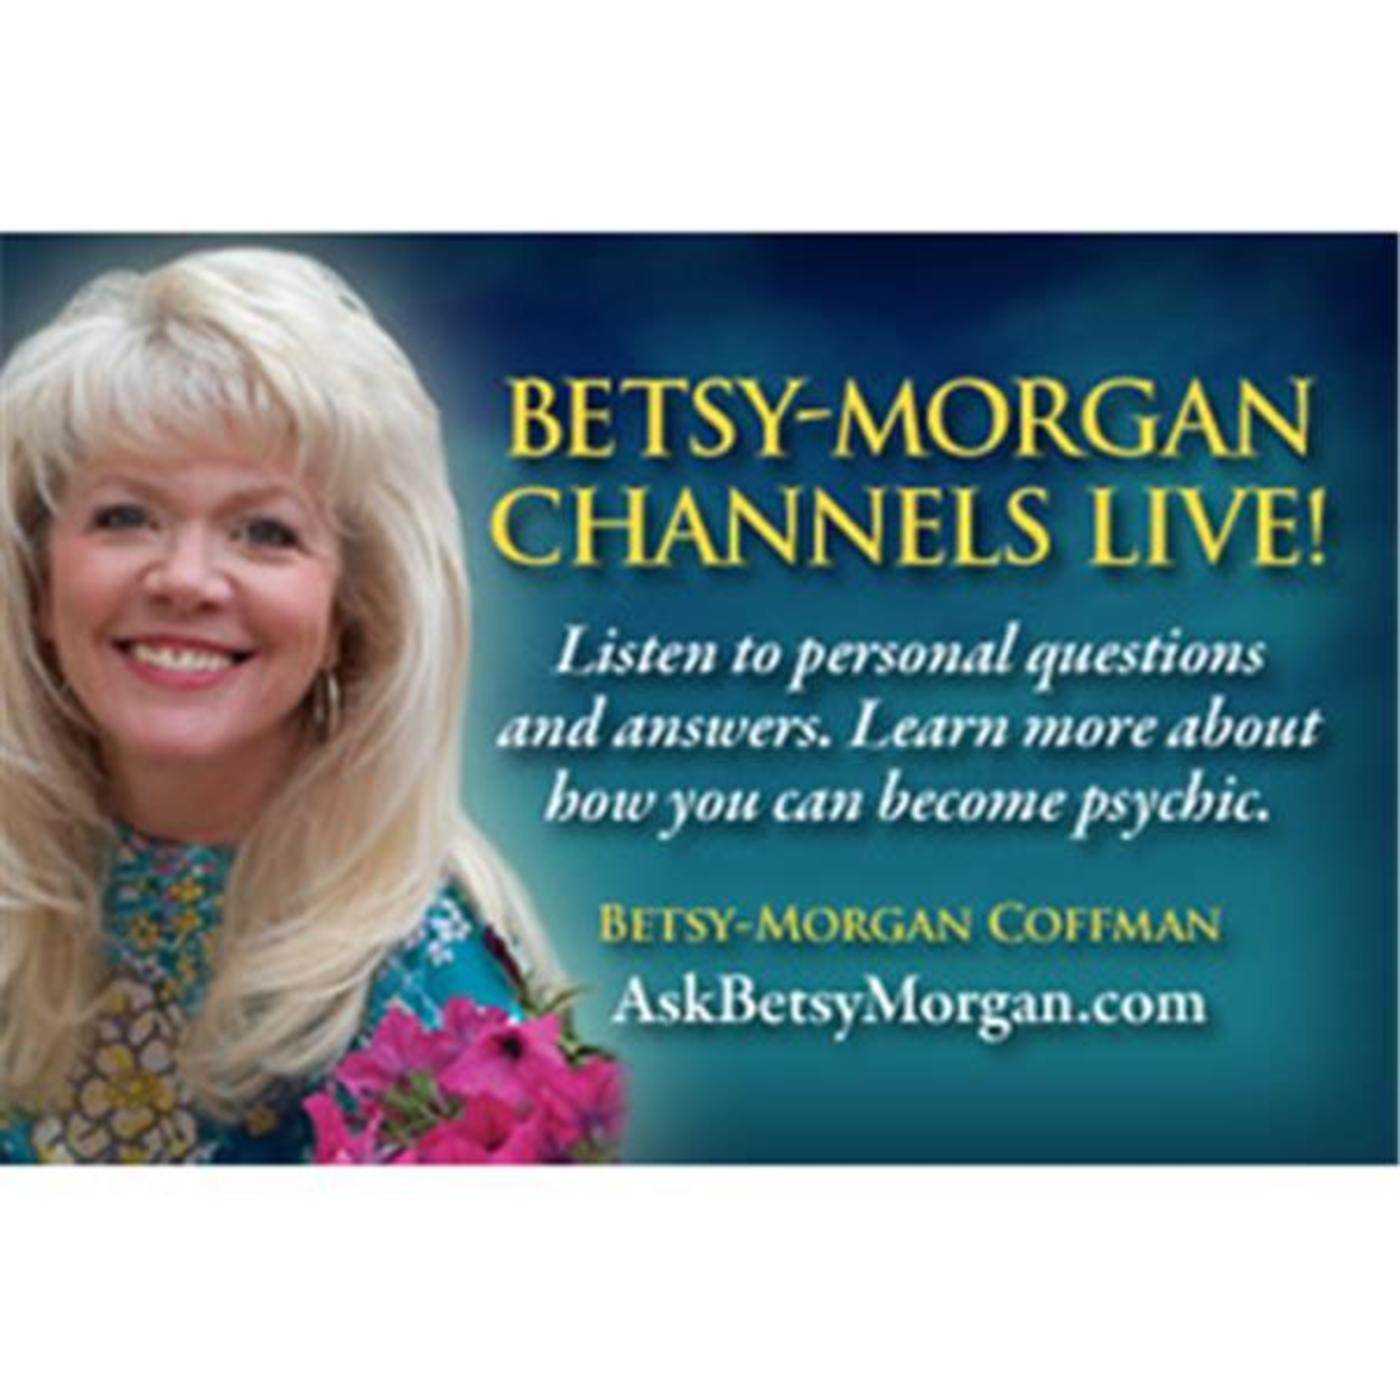 Betsy-Morgan Channels Live!